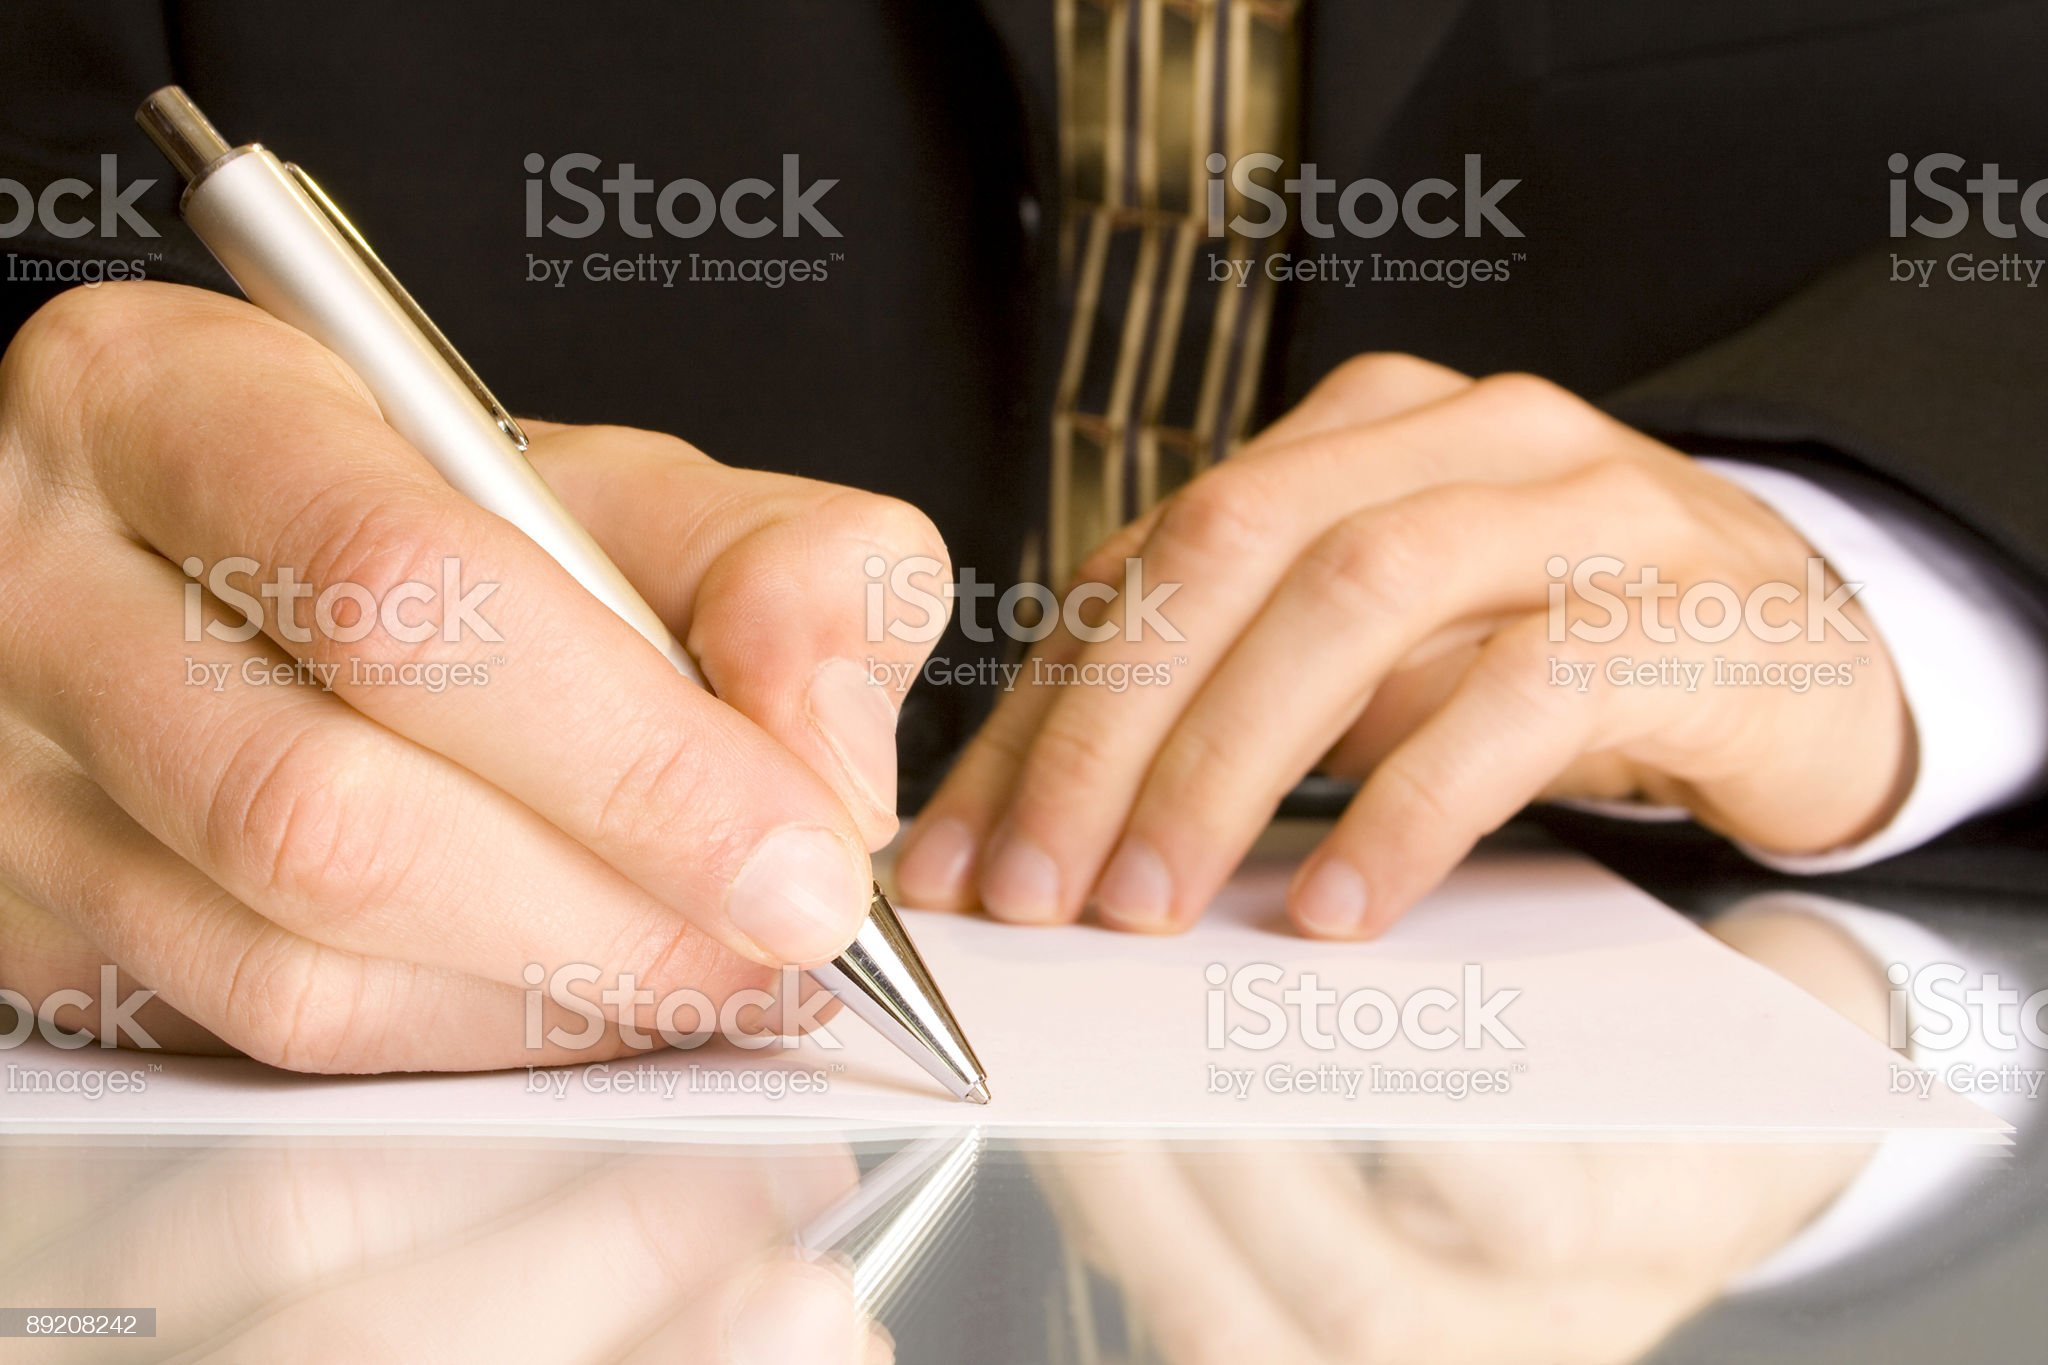 A person writing with a pen on a clean, white sheet of paper royalty-free stock photo